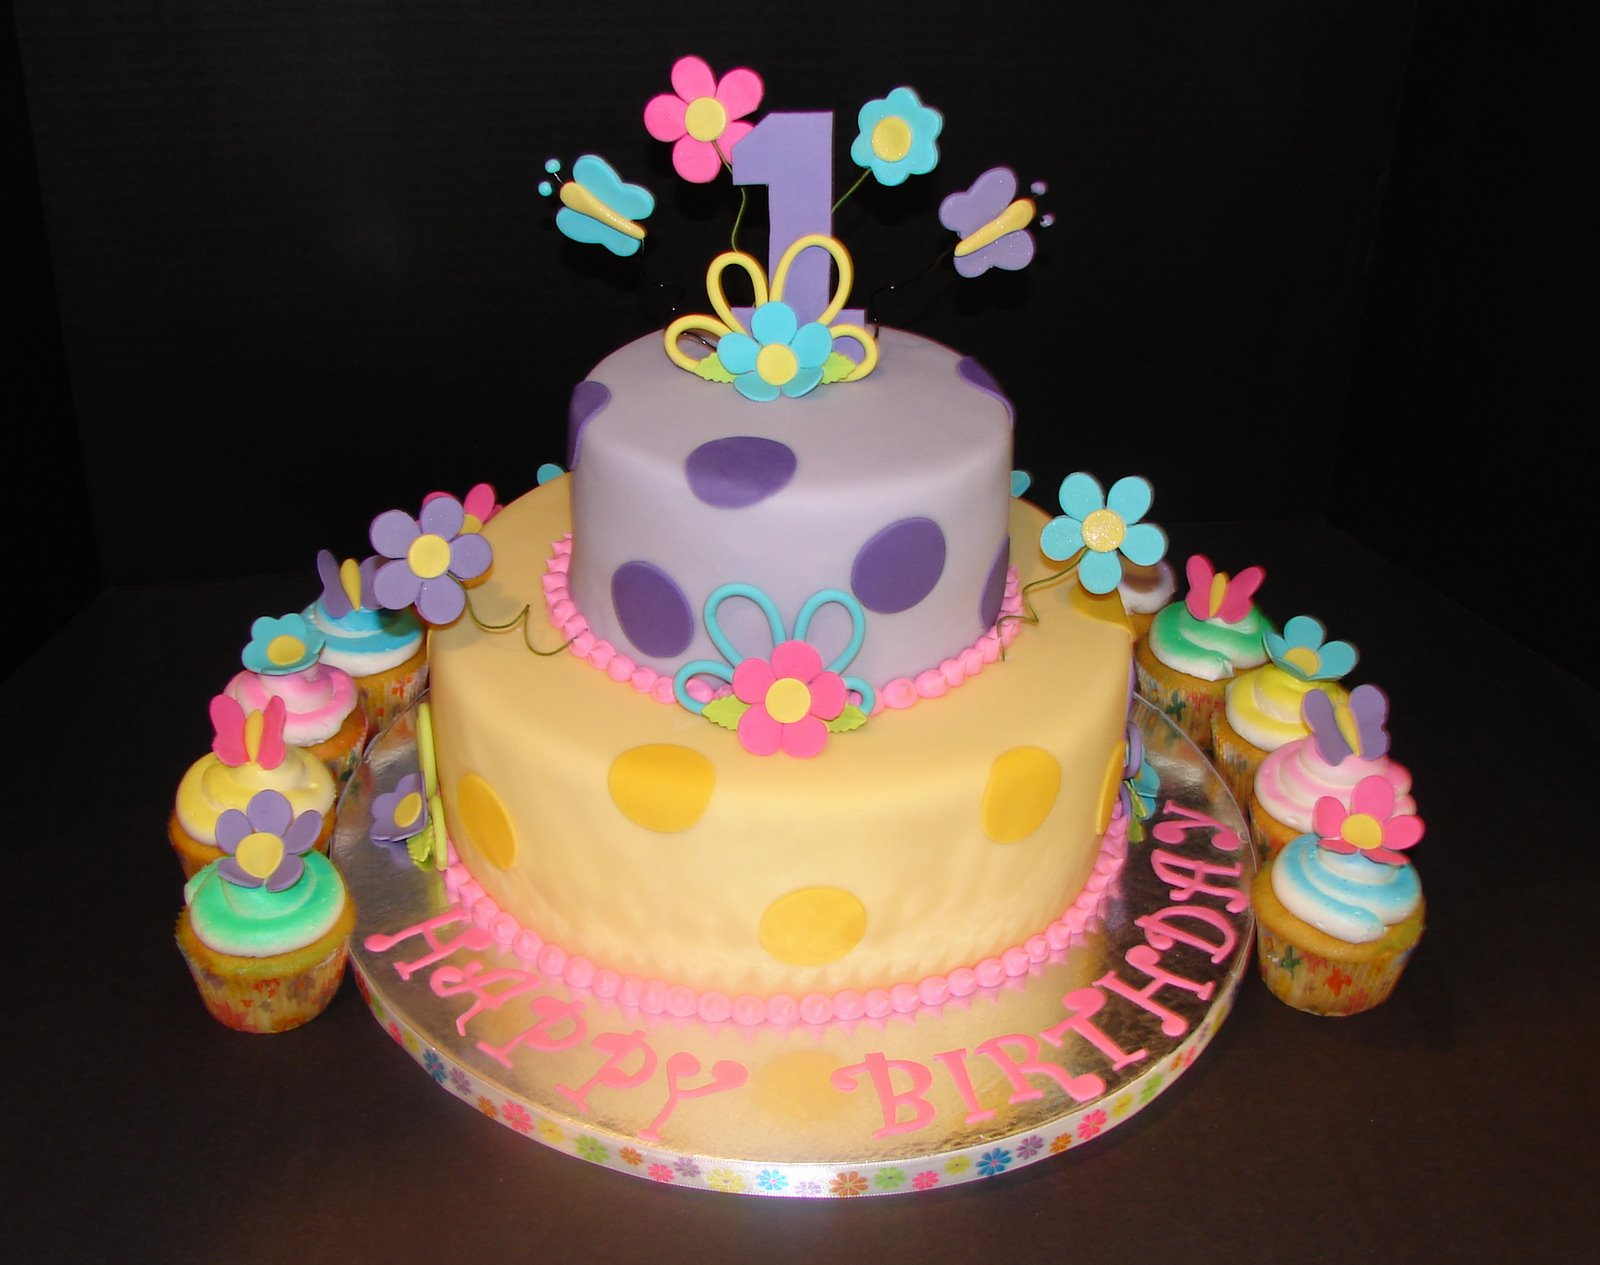 Birthday Cake Images Pic : teenage girl birthday cakes Cake Photos